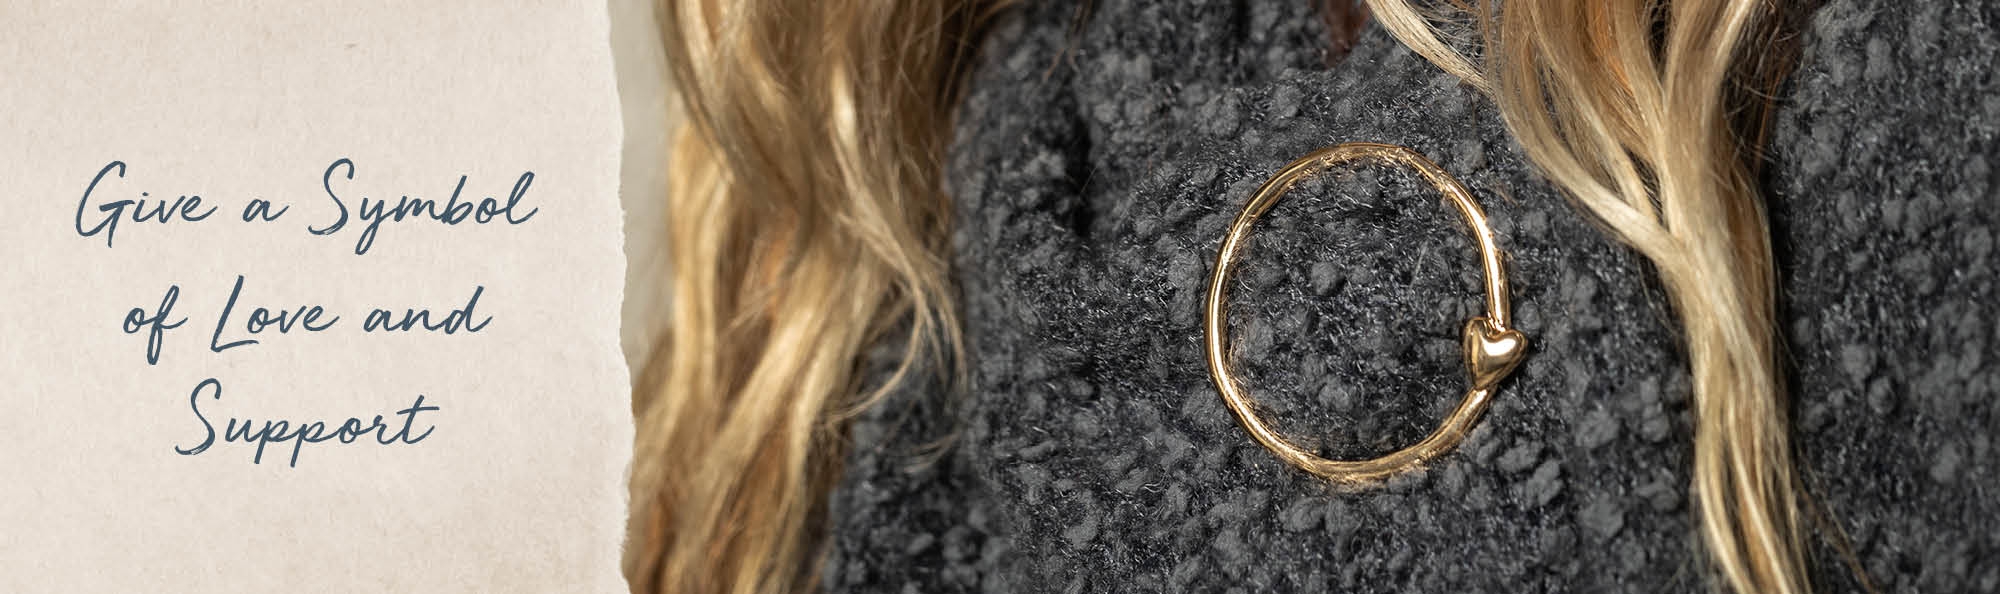 Give a Symbol of Love and Support. Gold circle pinned on to a soft gray shawl.